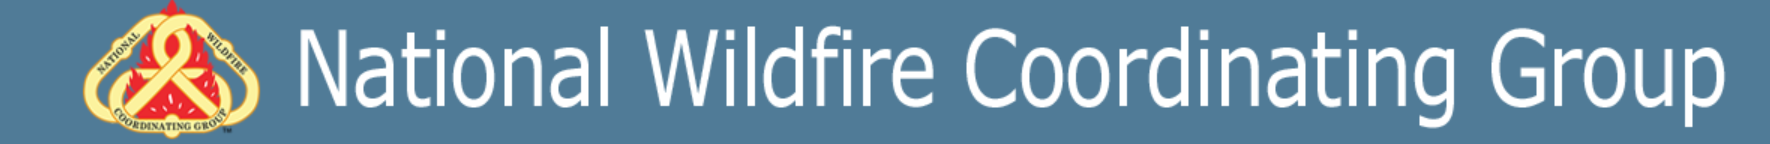 National Wildfire Coordinating Group masthead.